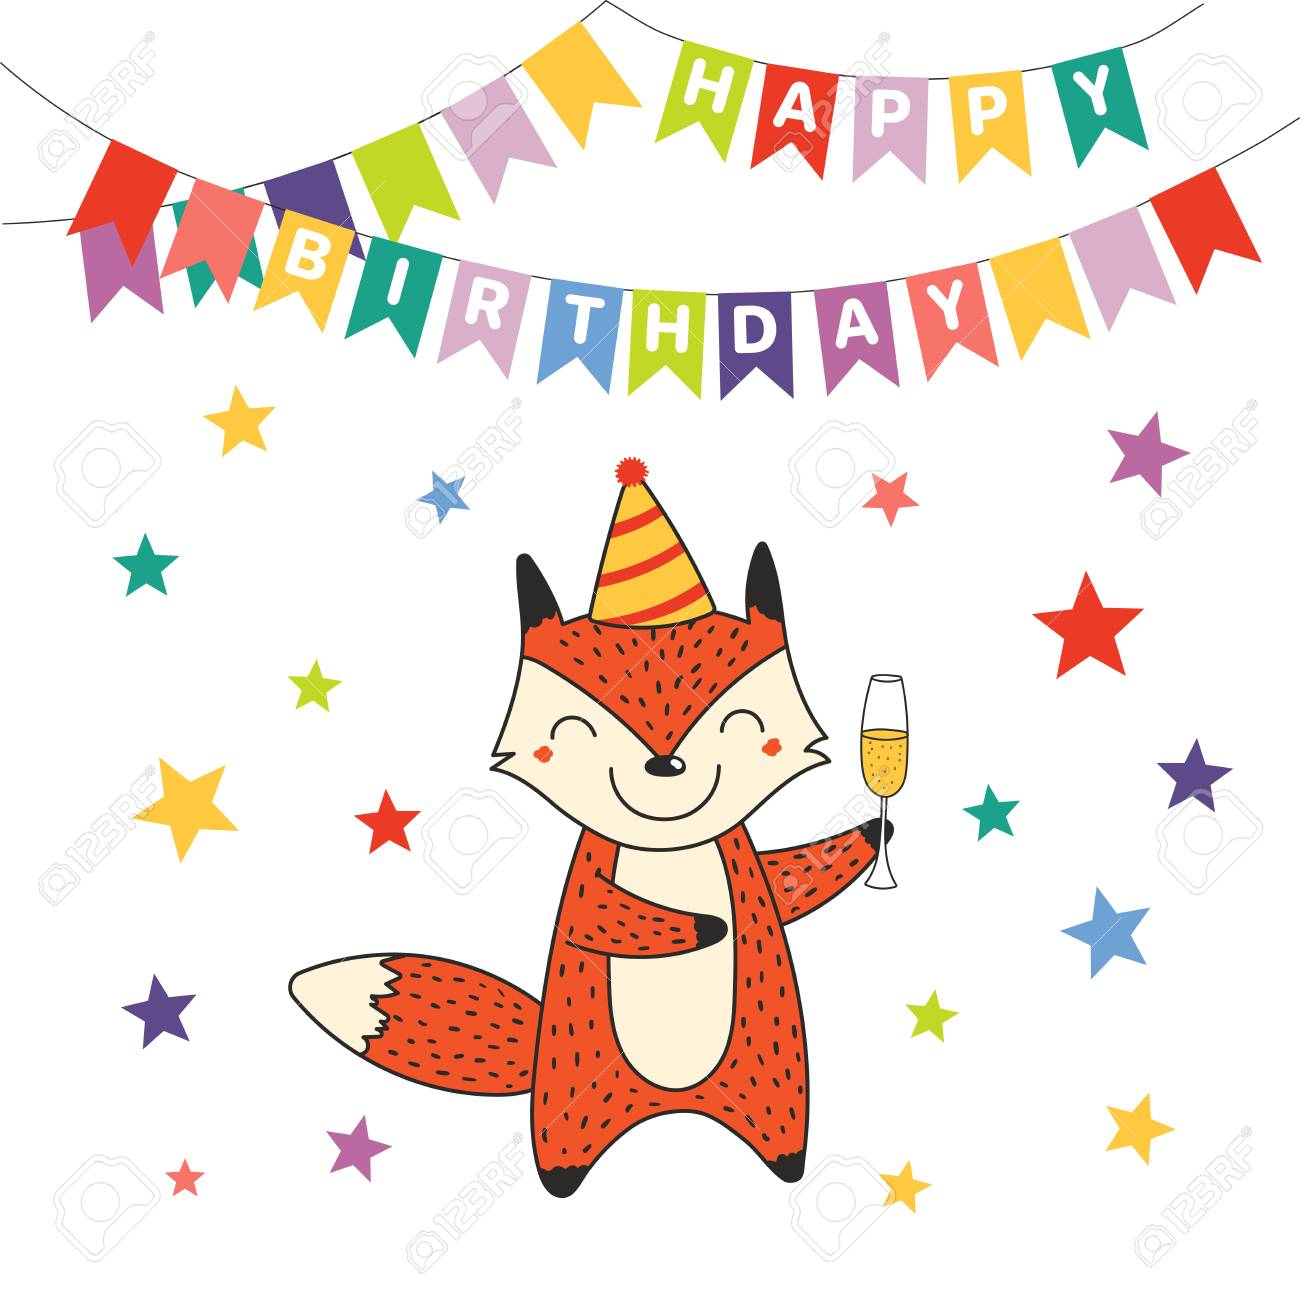 Hand Drawn Happy Birthday Greeting Card With Cute Funny Cartoon Fox A Glass Of Champagne